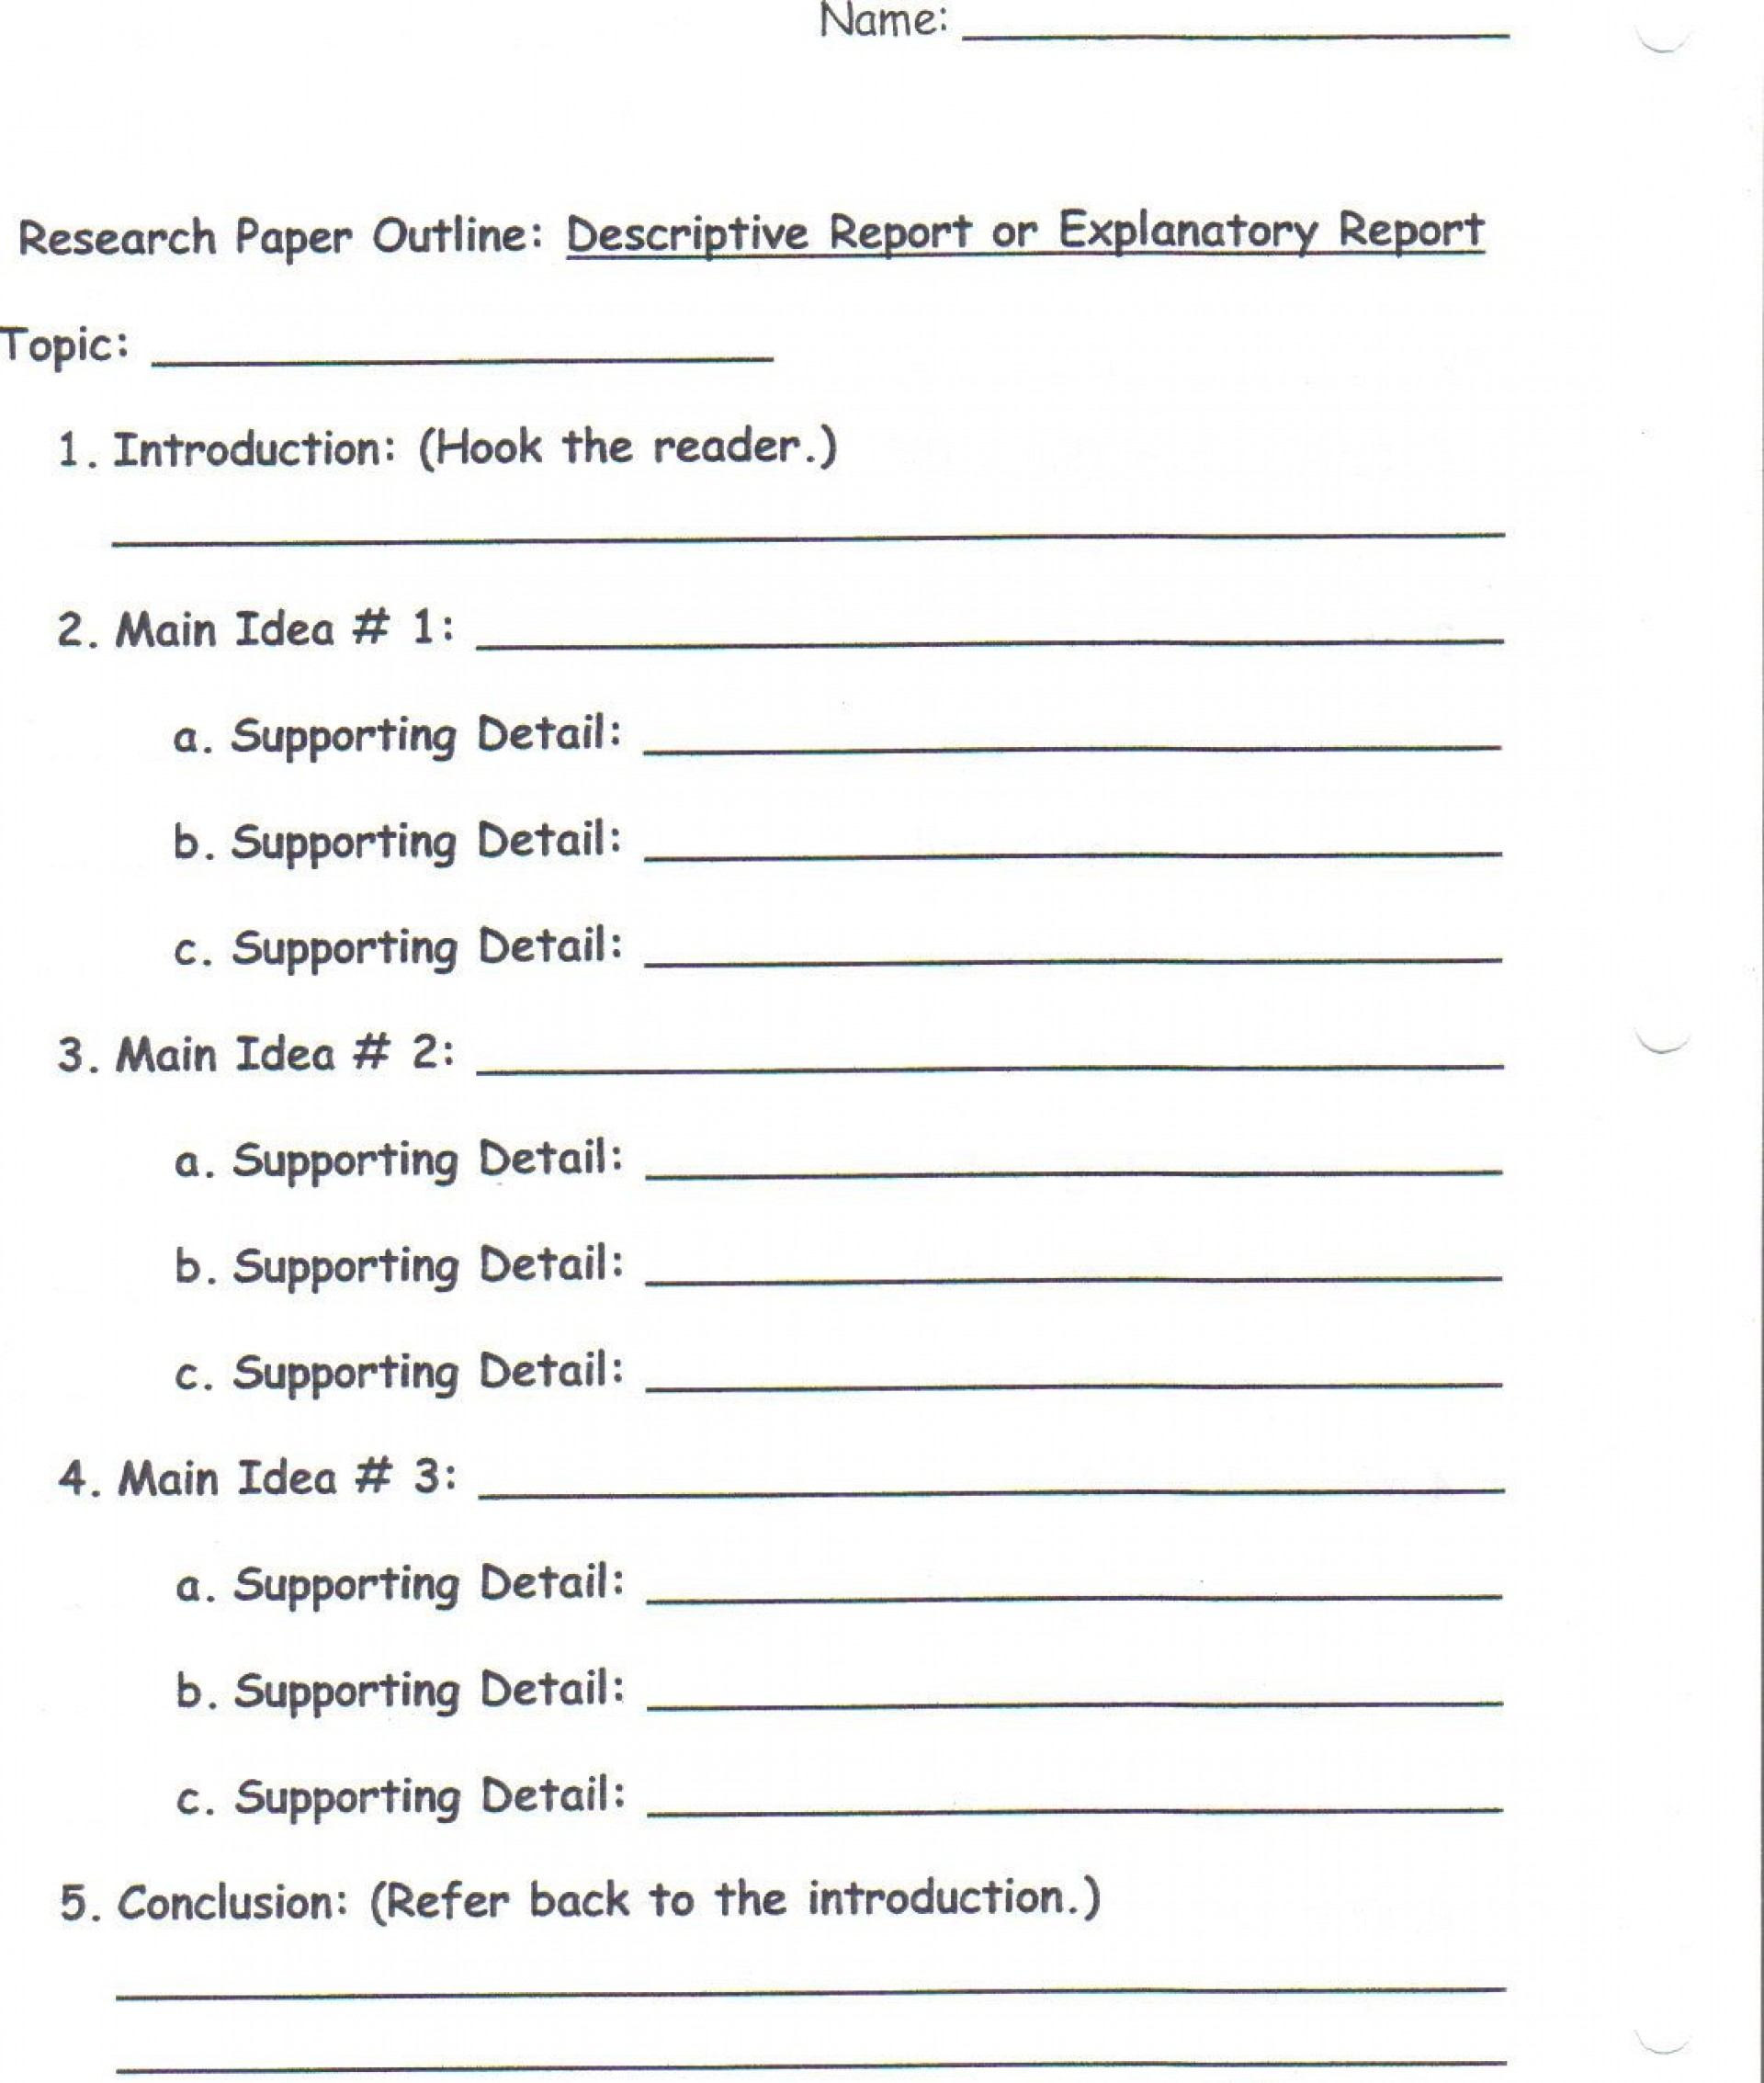 025 Research Paper Topic Idea Awesome Ideas 2019 Economics For Middle School Students 1920